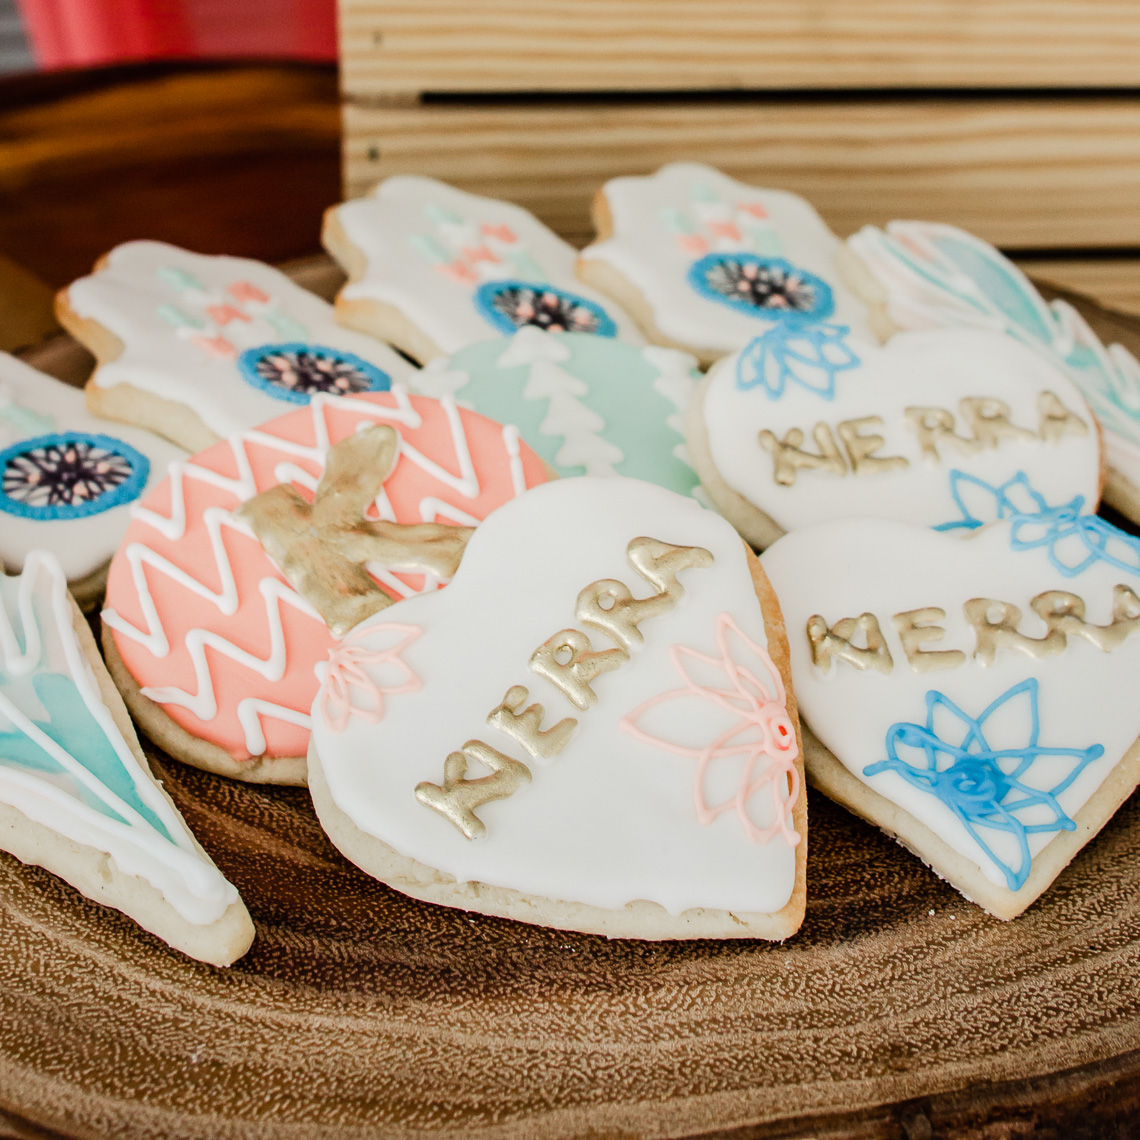 boho chic birthday party papillons events beverly hills (3 of 20).jpg